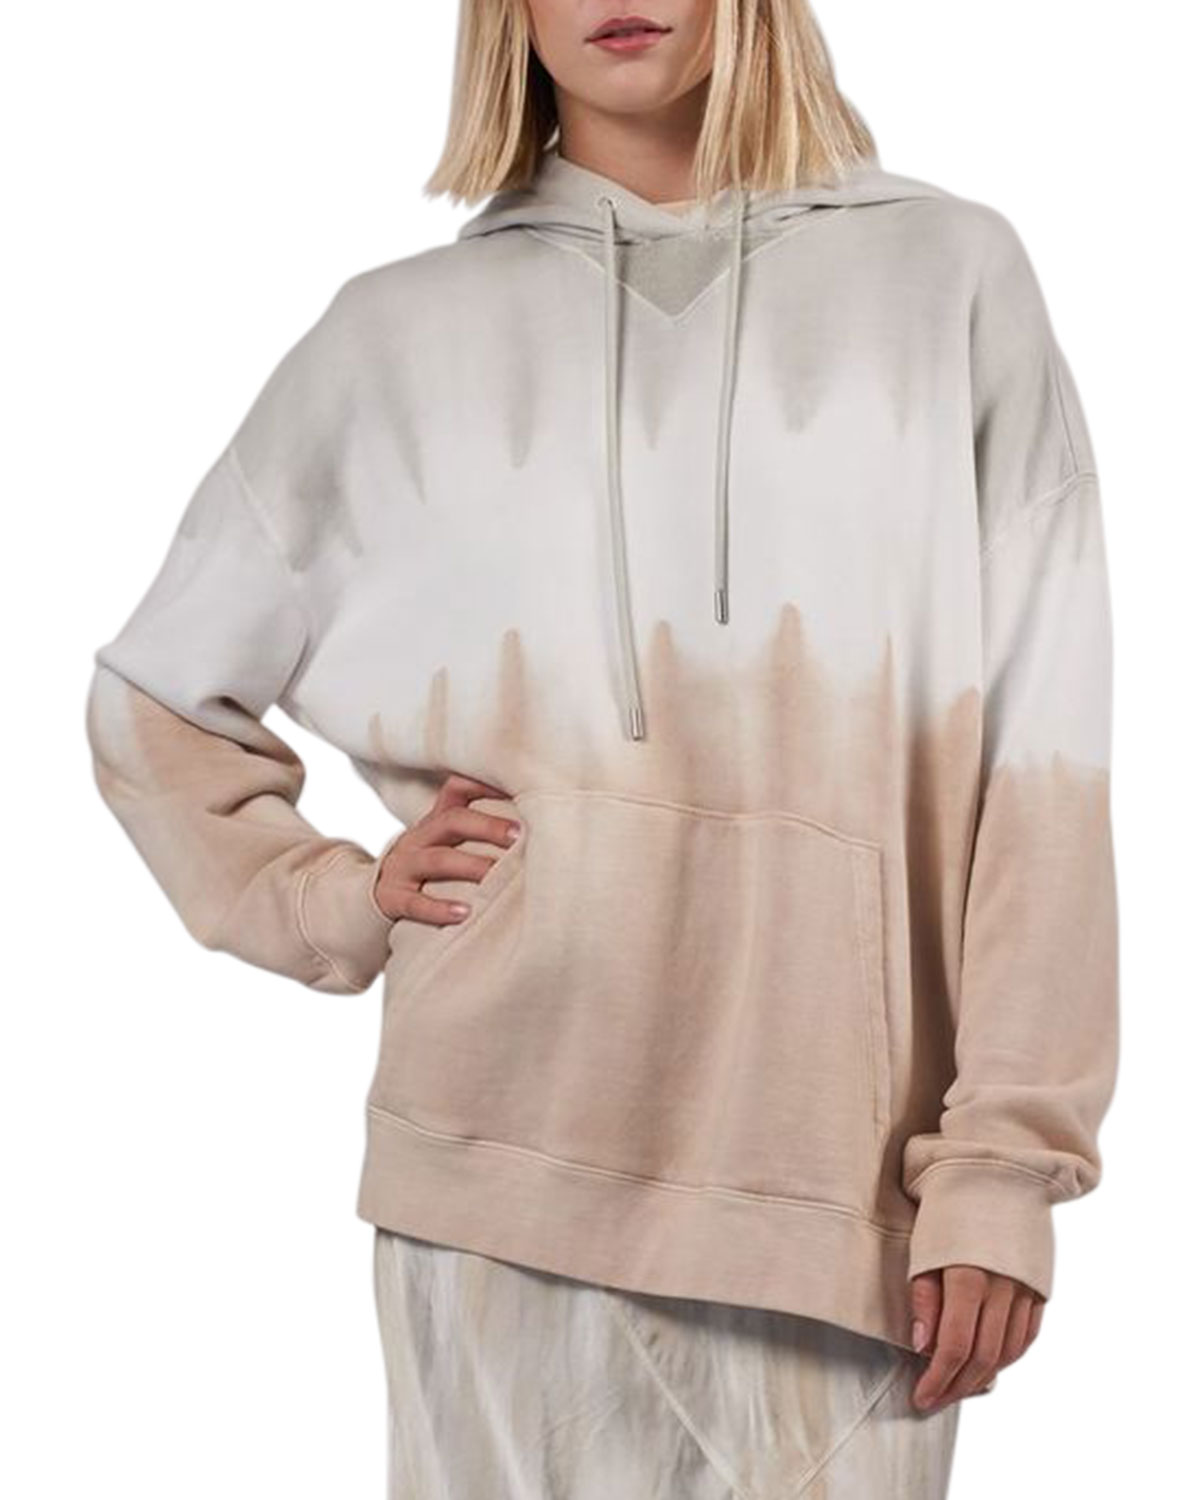 French Terry Tie-Dye Oversized Hoodie